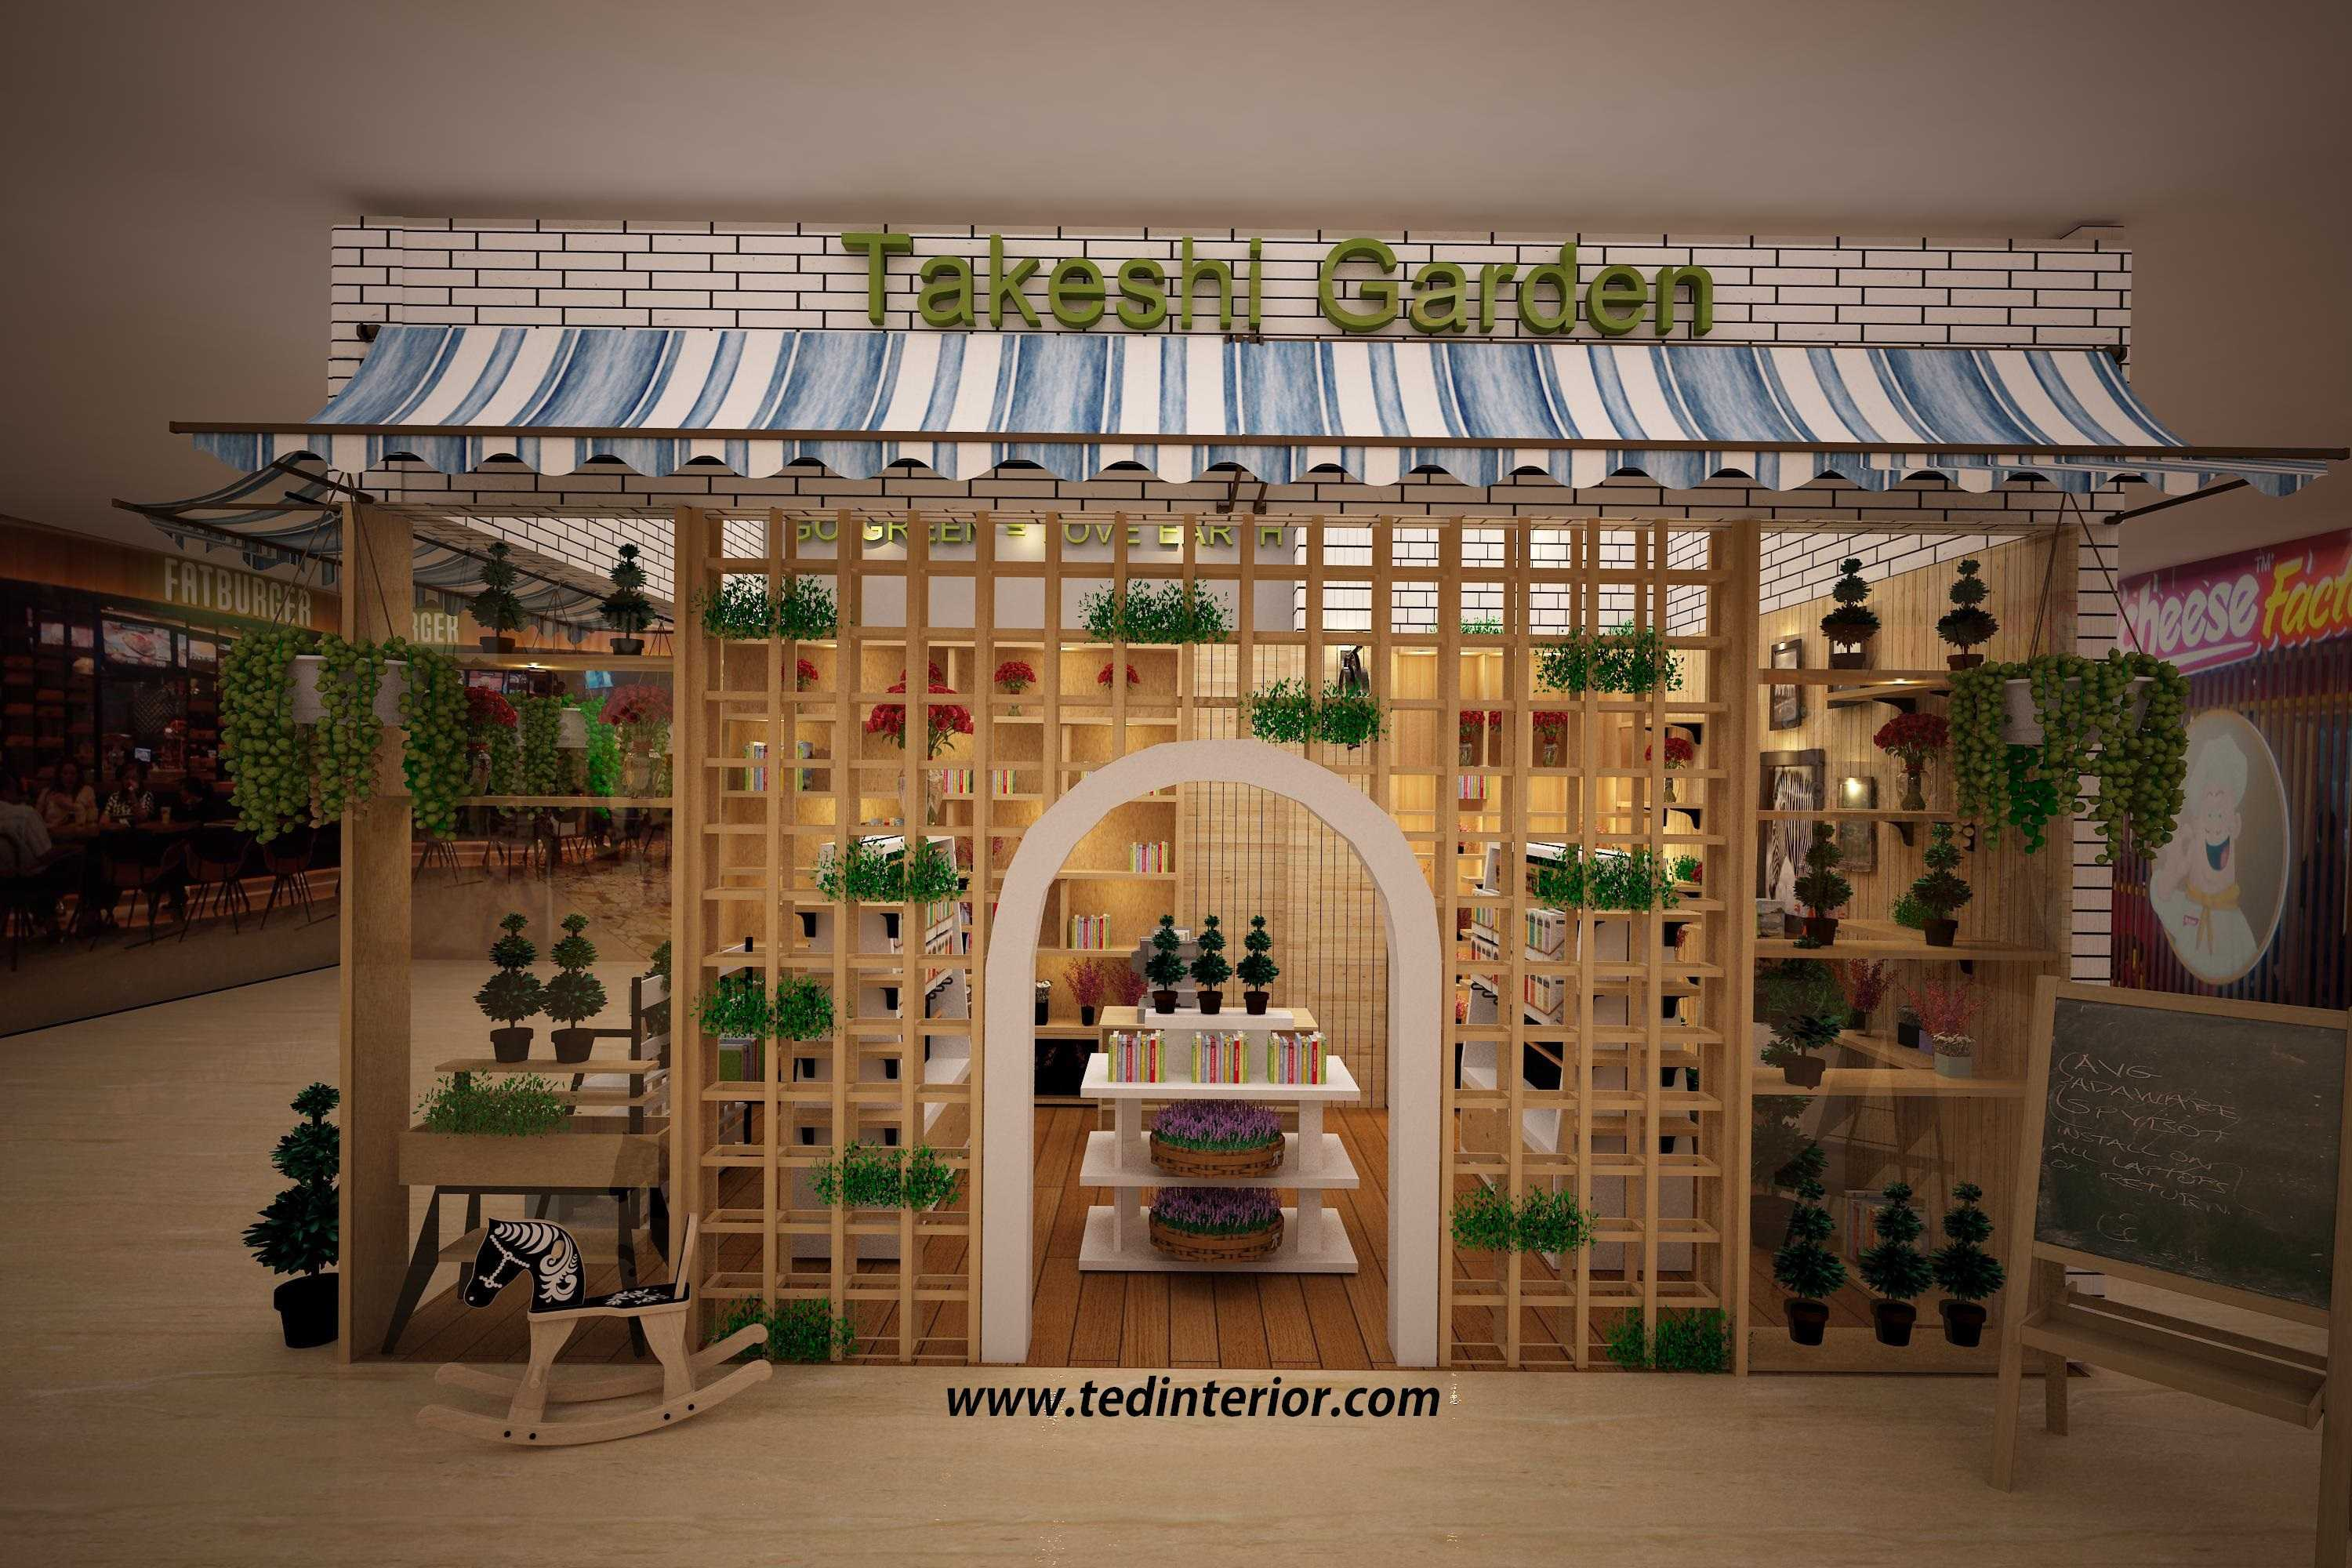 Pd Teguh Desain Indonesia Takeshi Garden Store   Shop-Front-1 Asian  35281